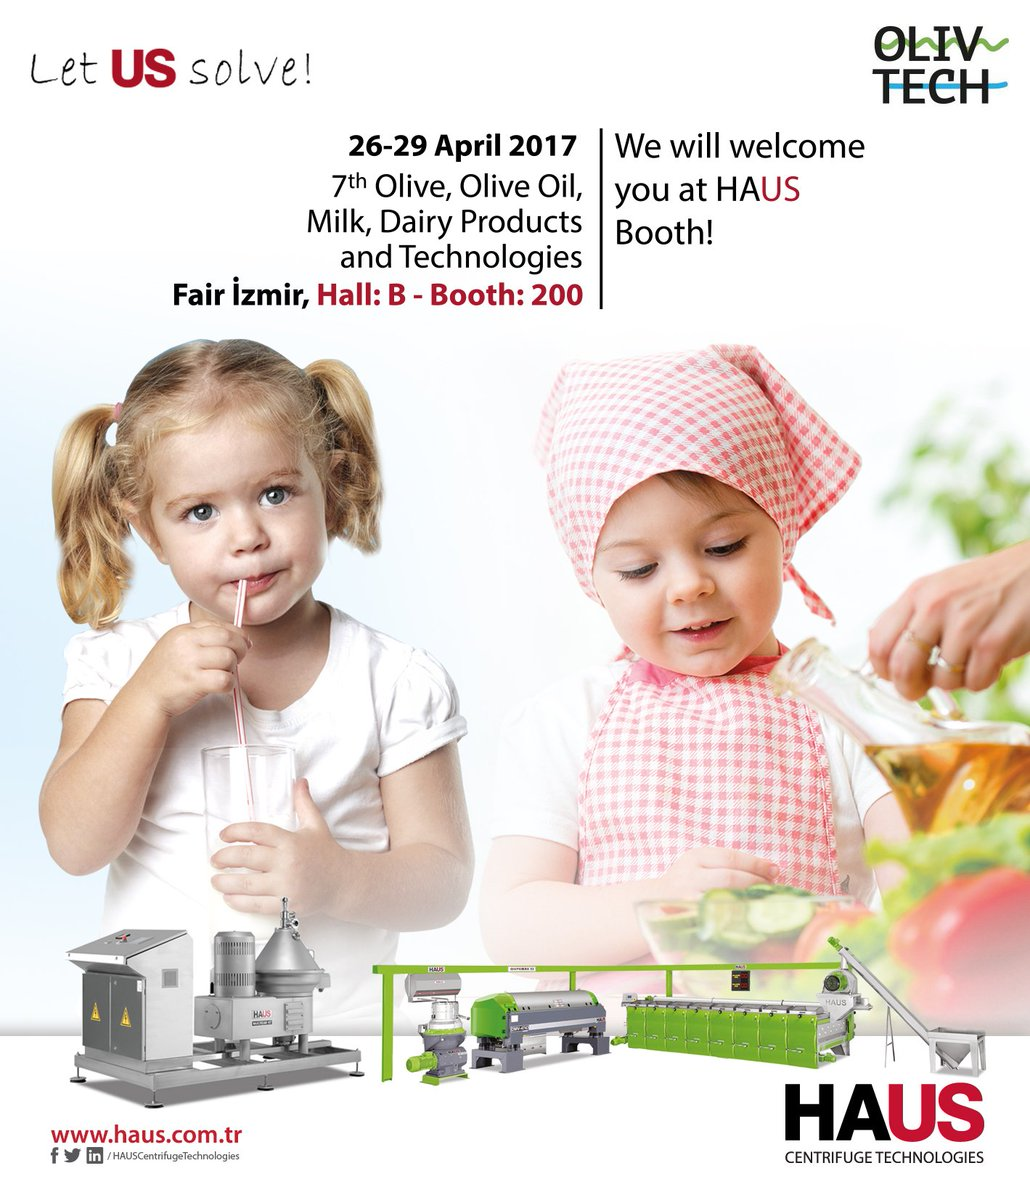 We will welcome you at HAUS Booth! #OLIVTECH #olive #oliveoil #milk #dairy #technologies #decantercentrifuge #discstackseparator